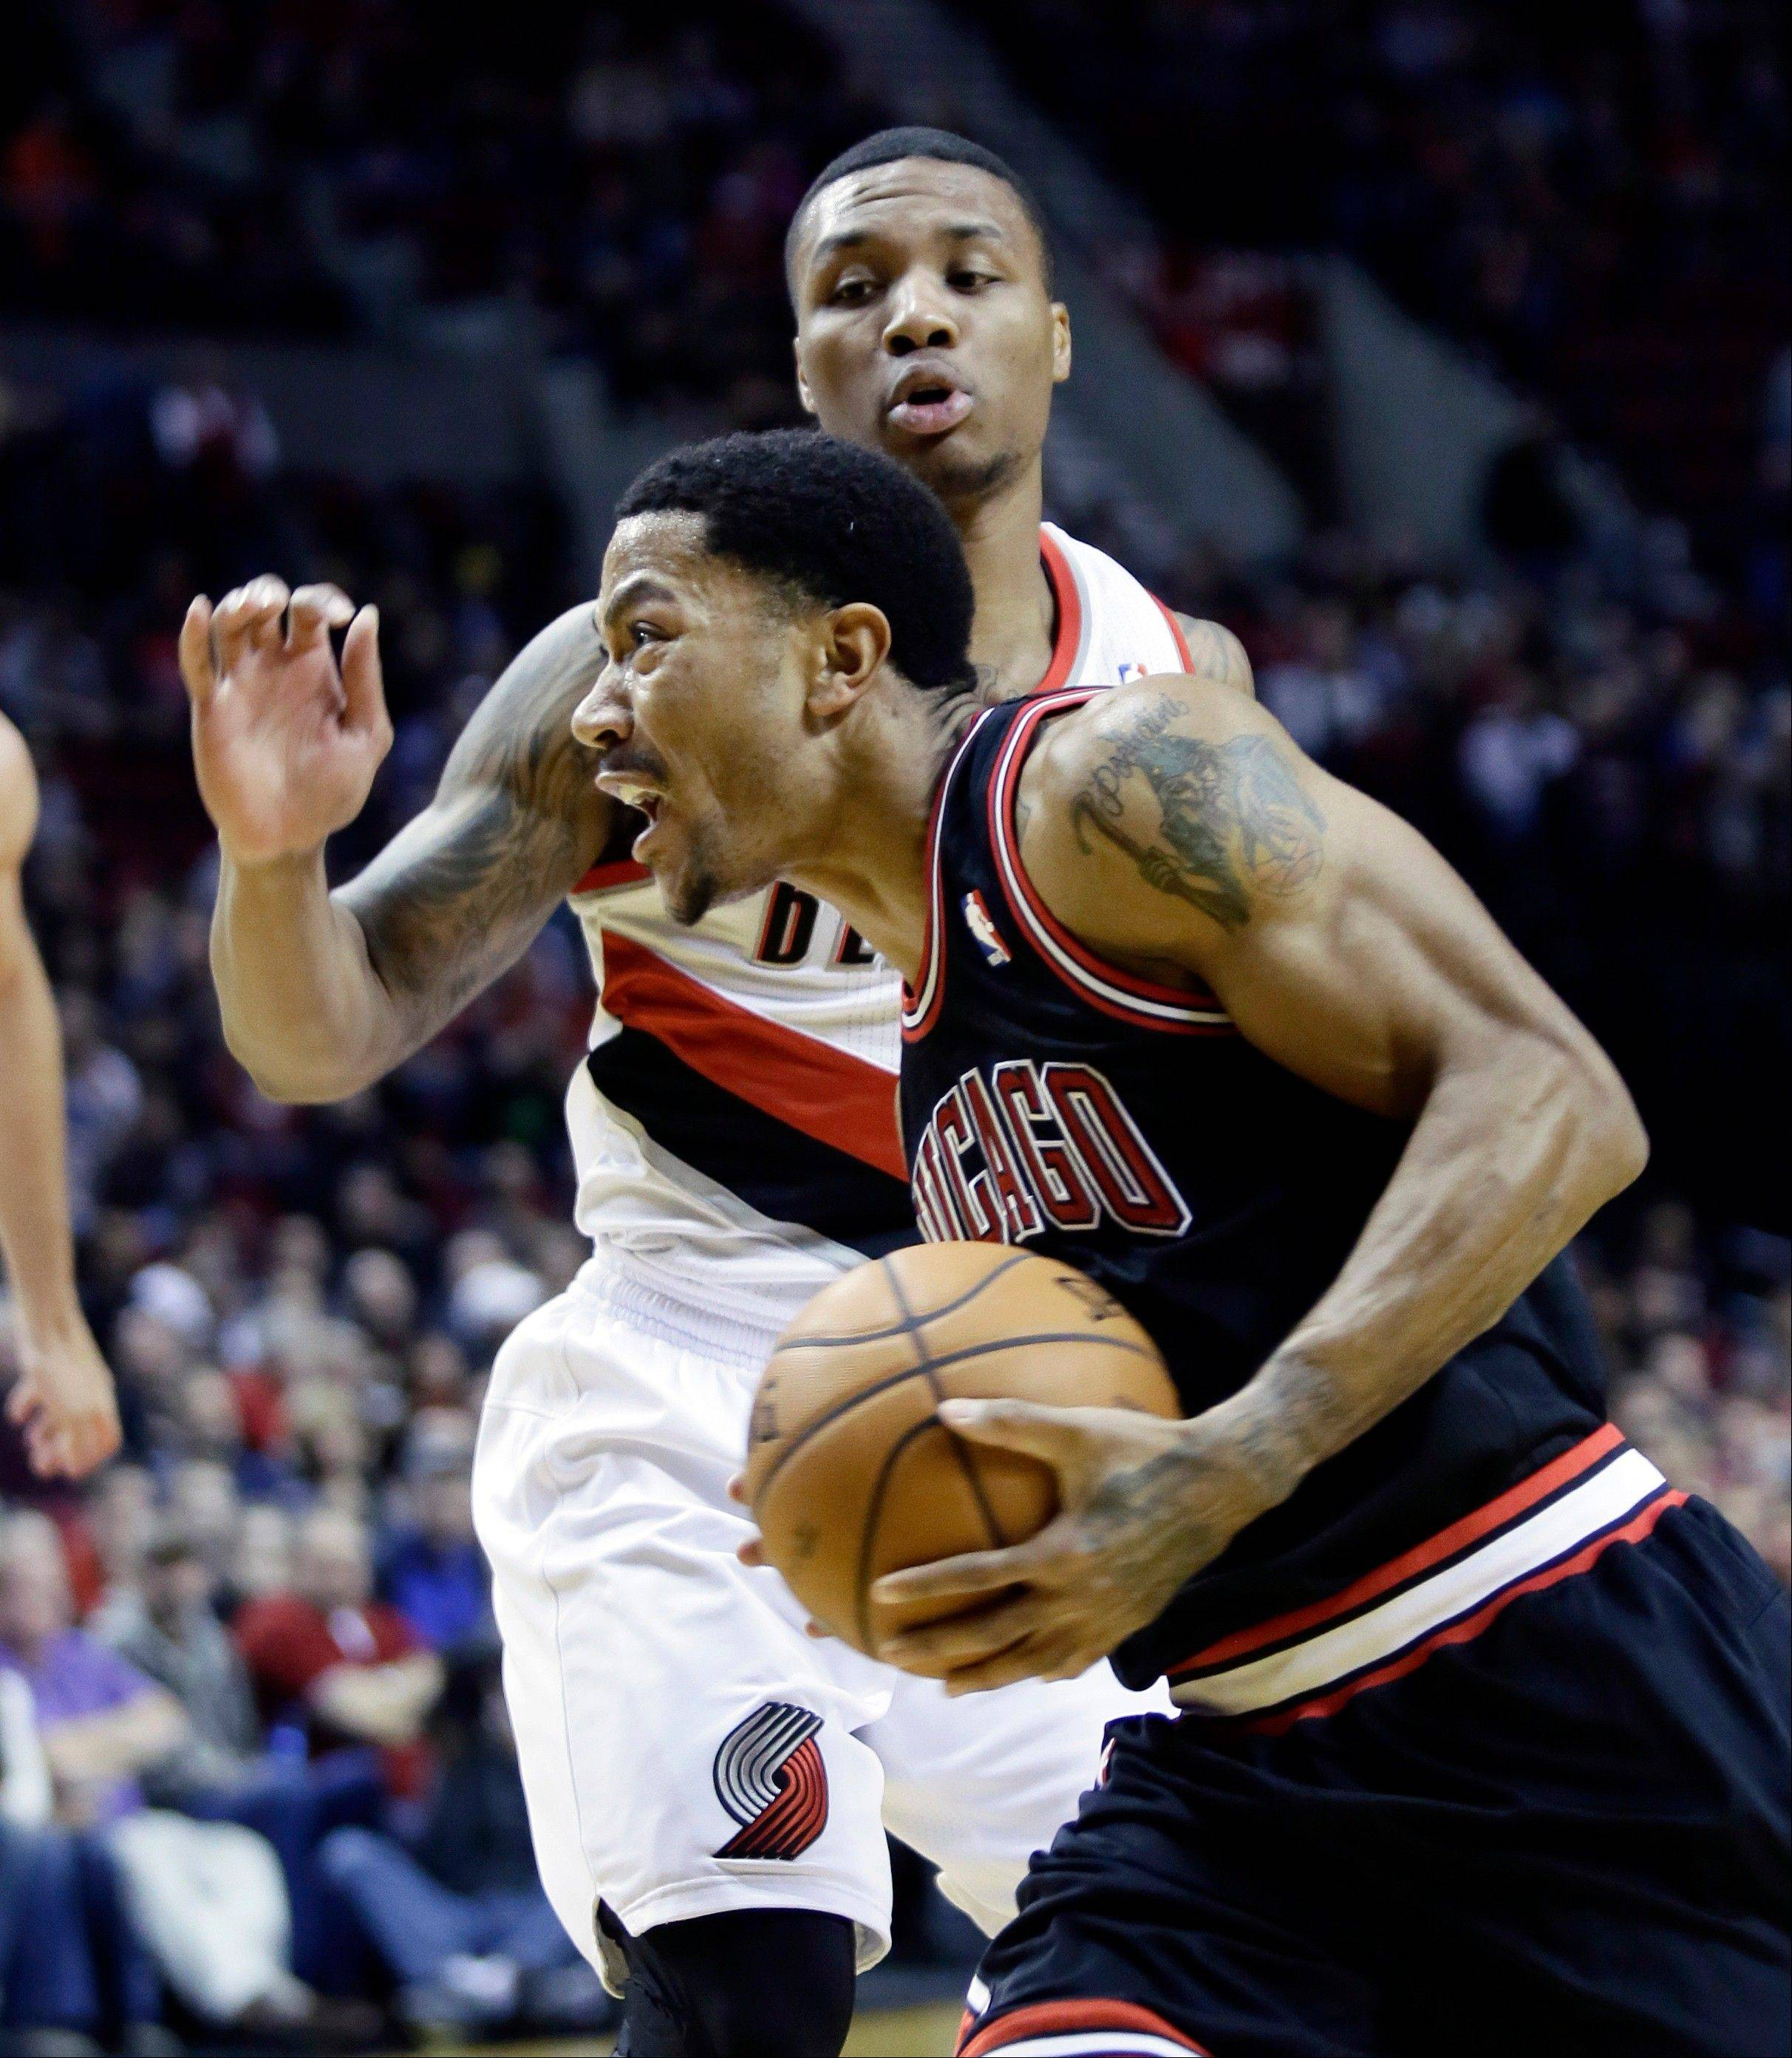 Bulls star Derrick Rose left the game against the Trail Blazers late in the third quarter Friday after injuring his right knee. Rose missed all of last season after having surgery to repair a torn ACL in his left knee.